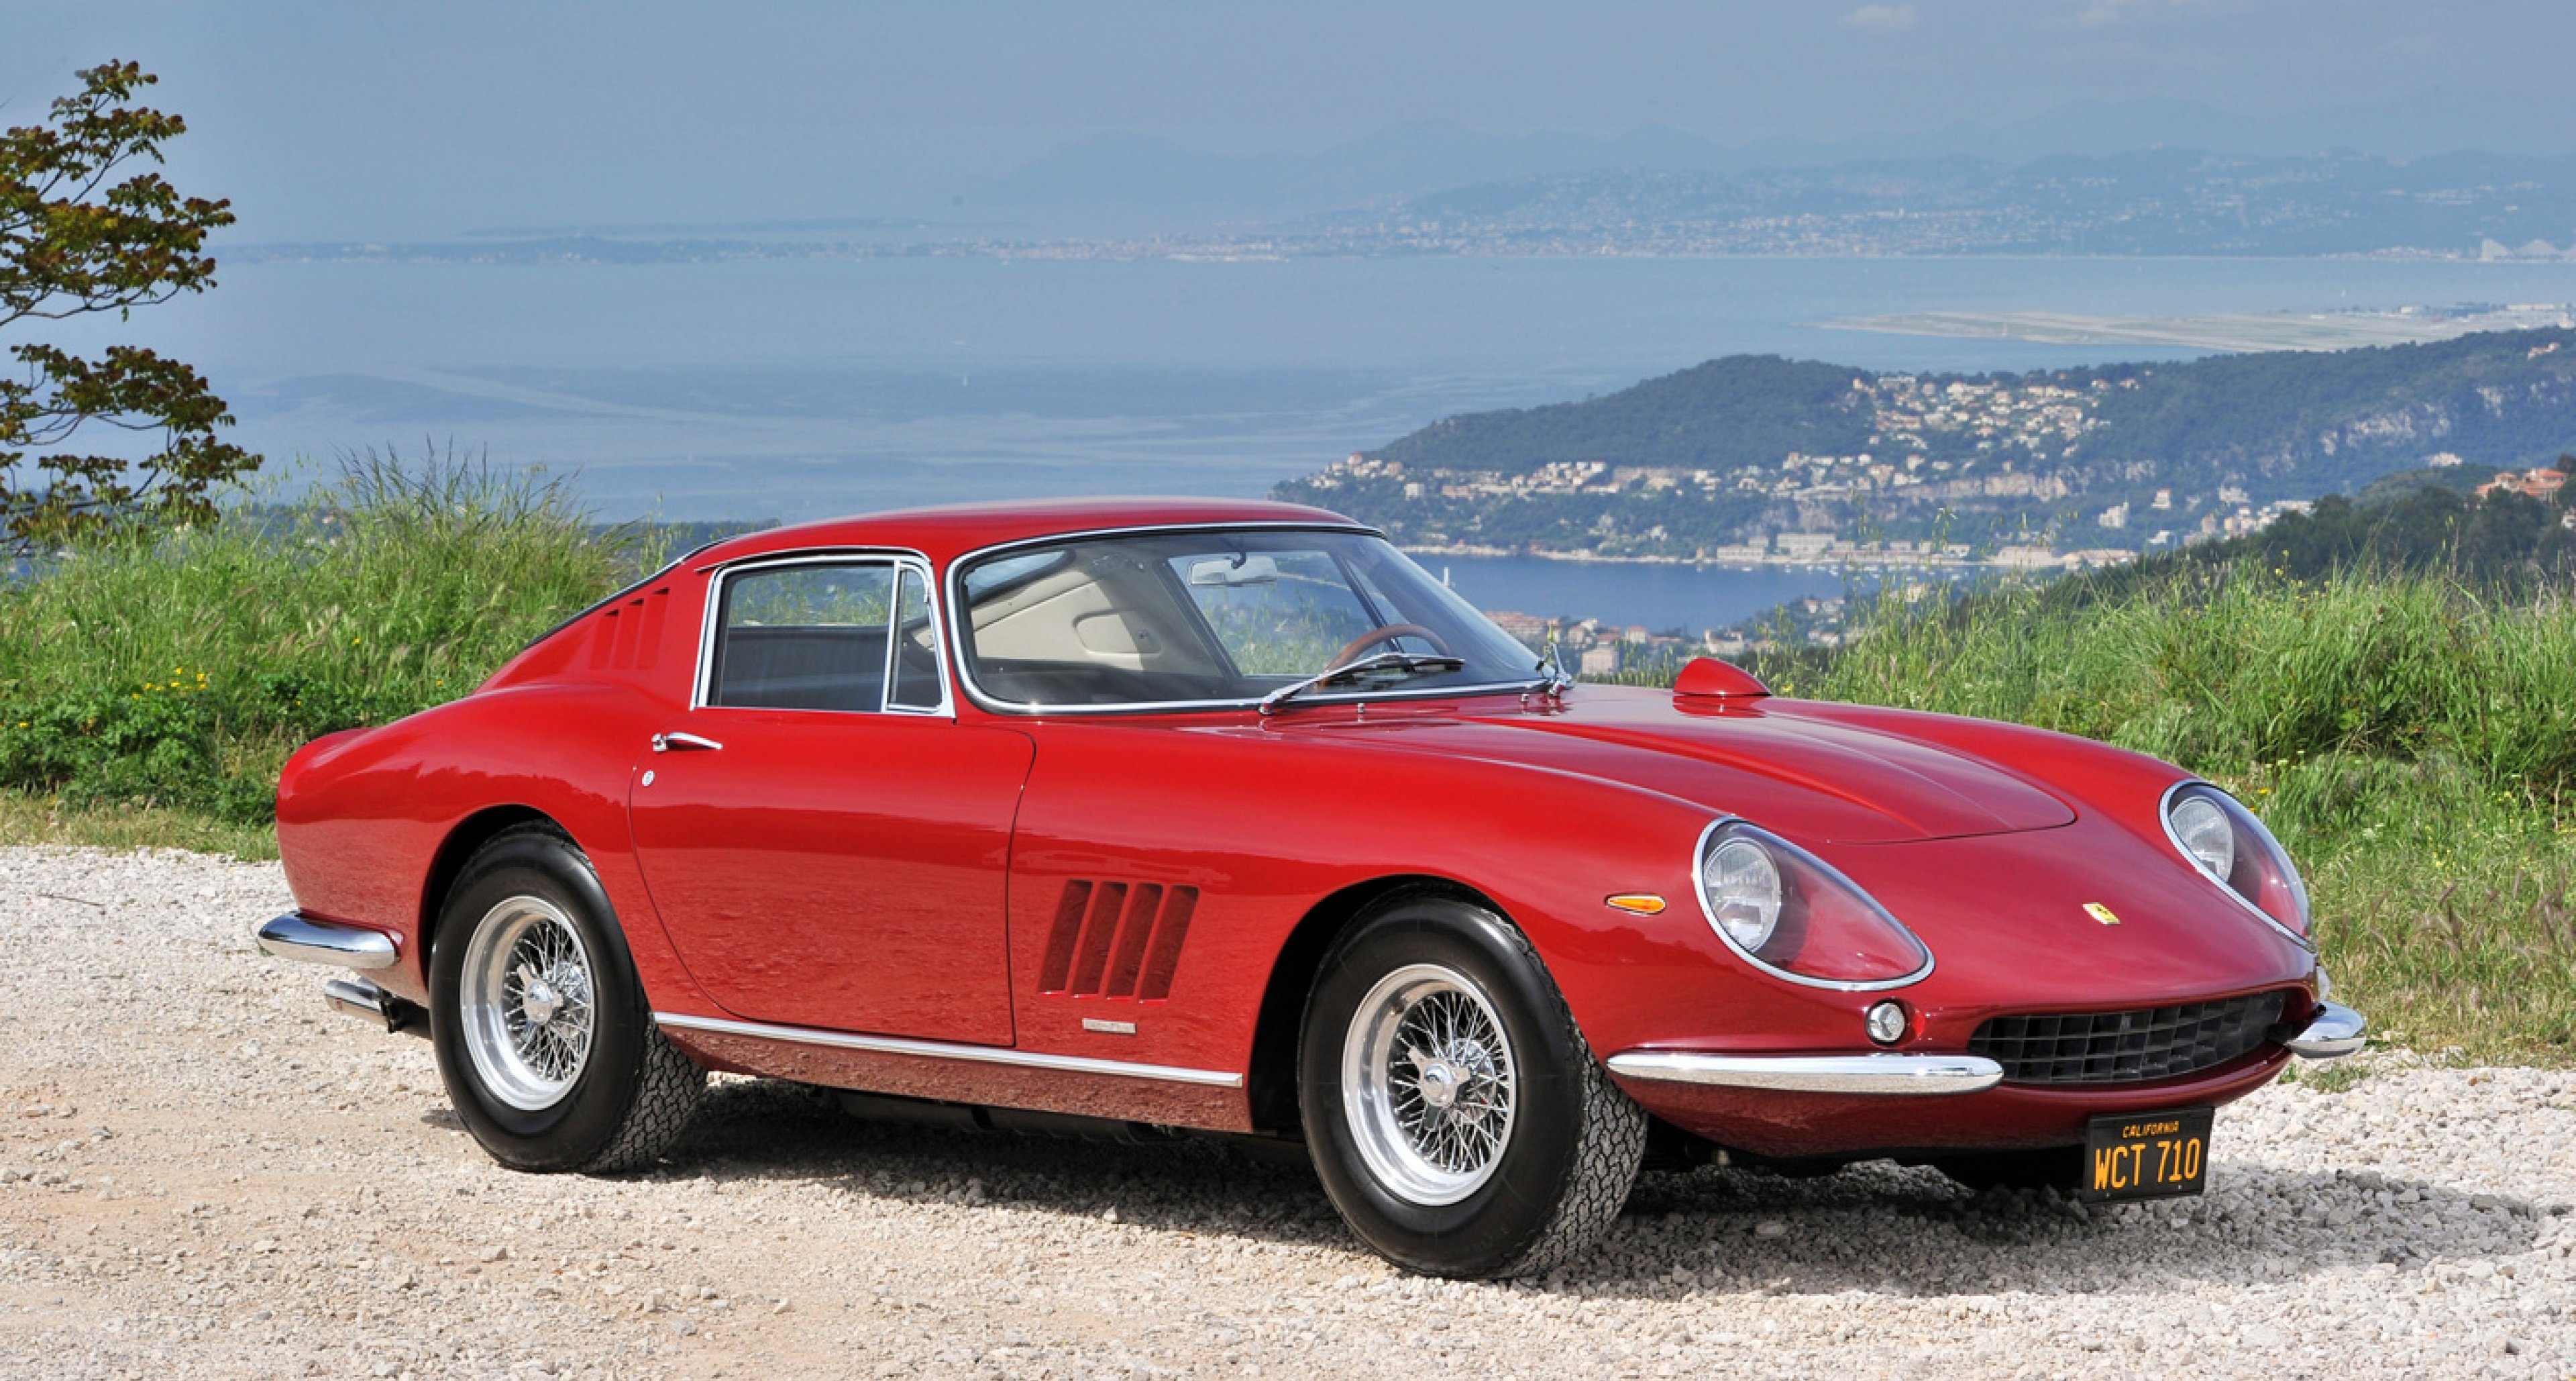 1967 Ferrari 275 GTB/4 by Scaglietti; ex-Steve McQueen to be auctioned at RM's Monterey auction 2014